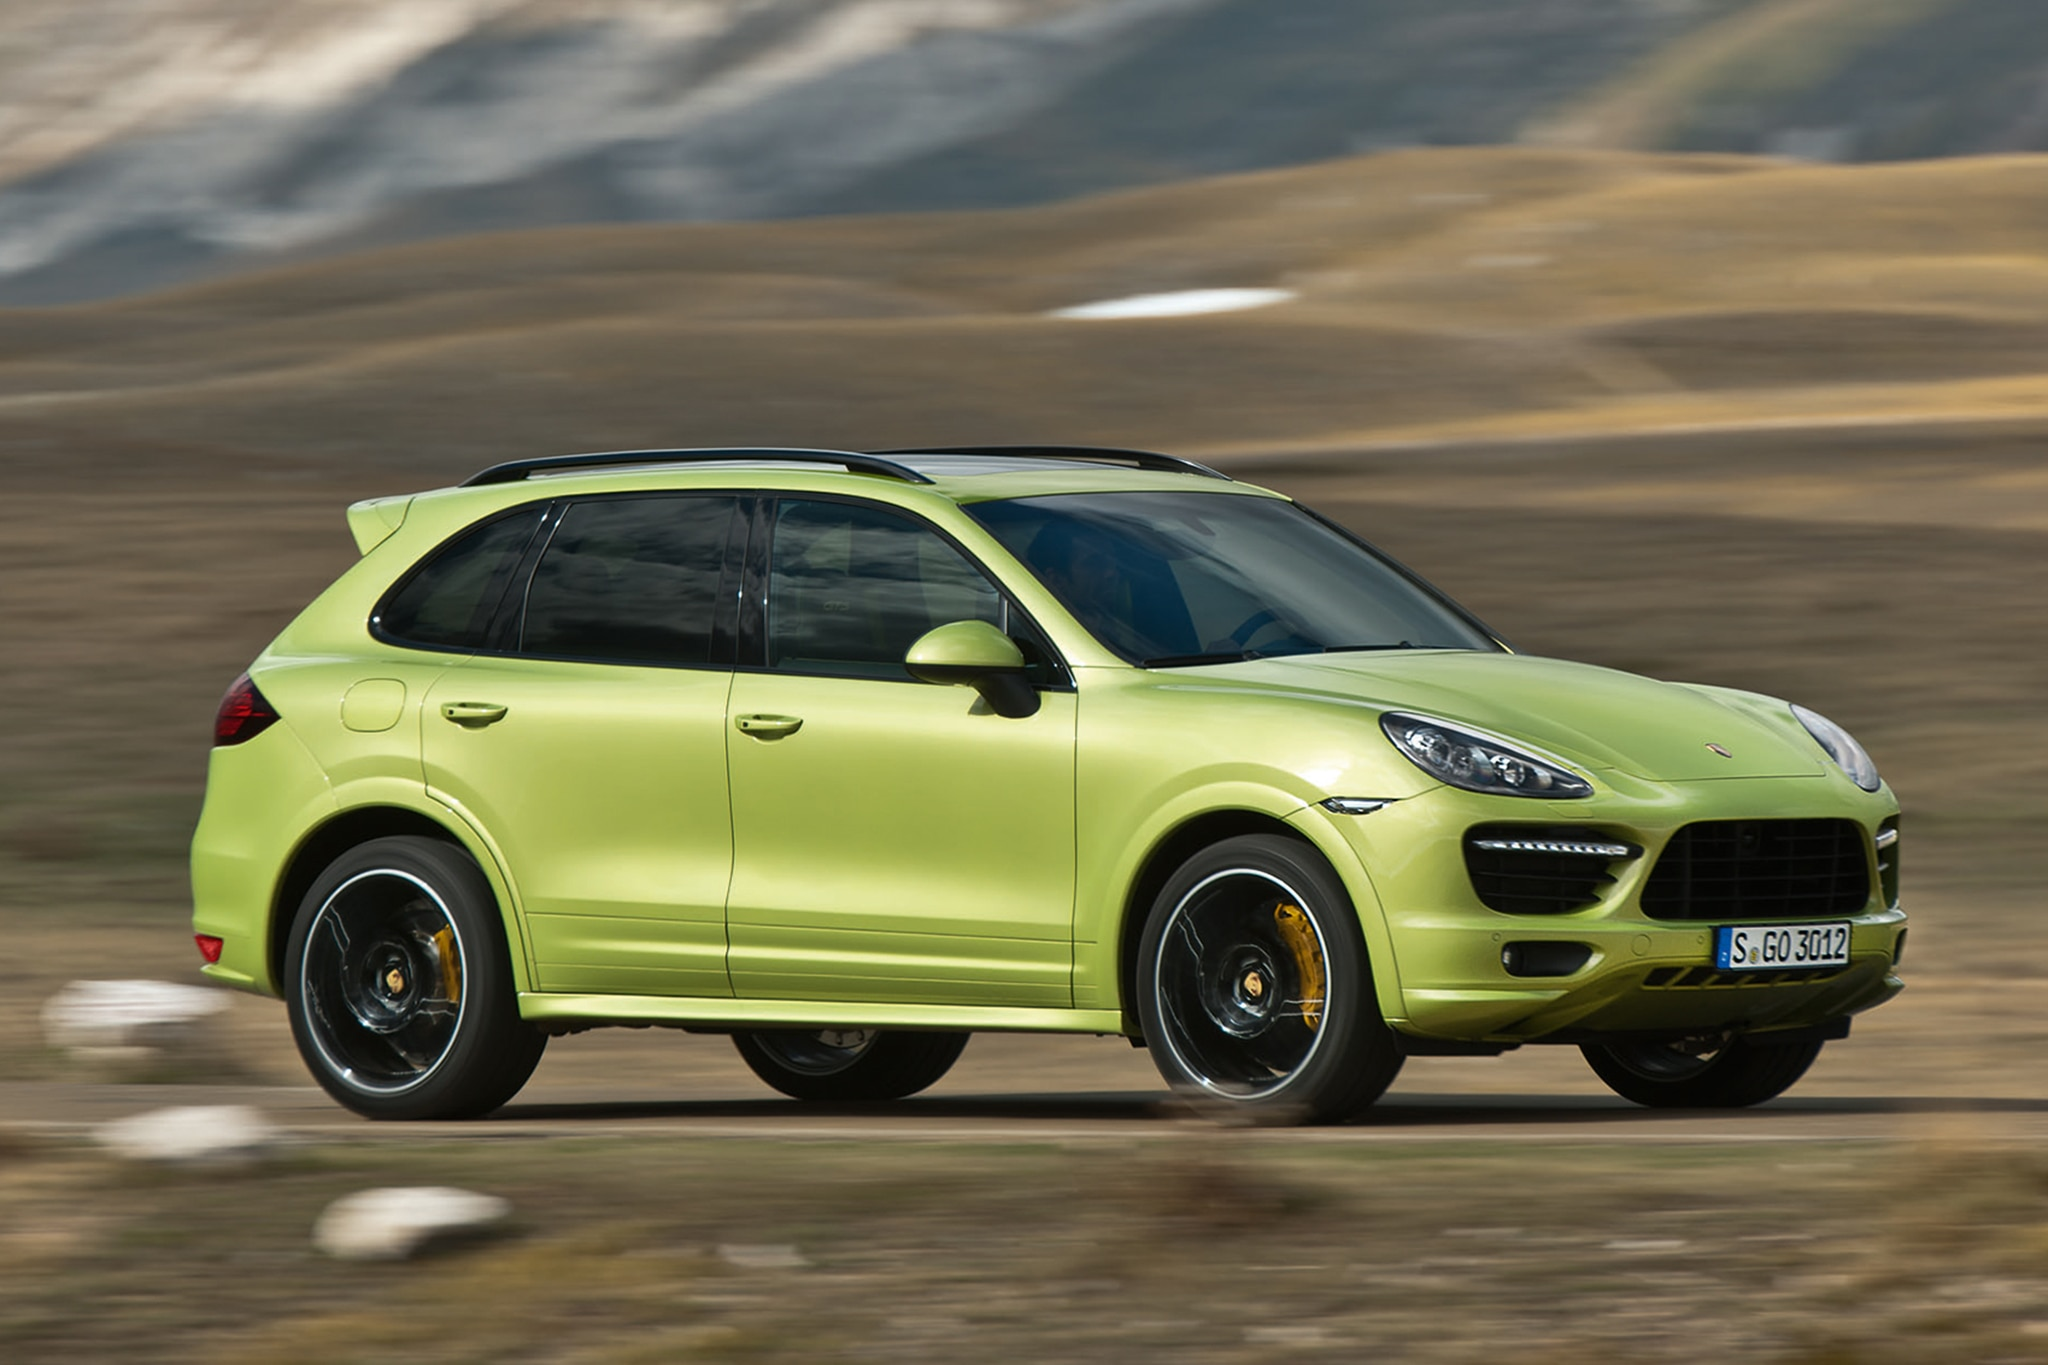 2013 Porsche Cayenne GTS Three Quarters1